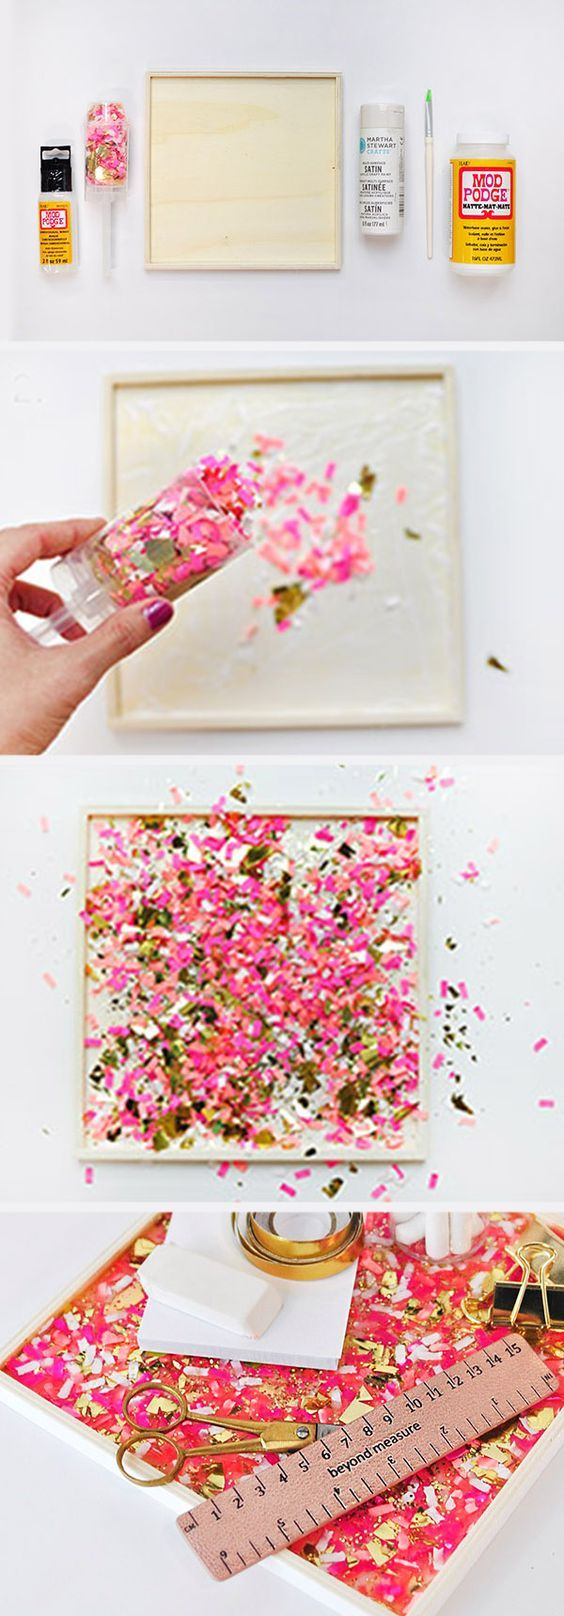 crafts splash of color home easy diy the back sparkle diy and crafts